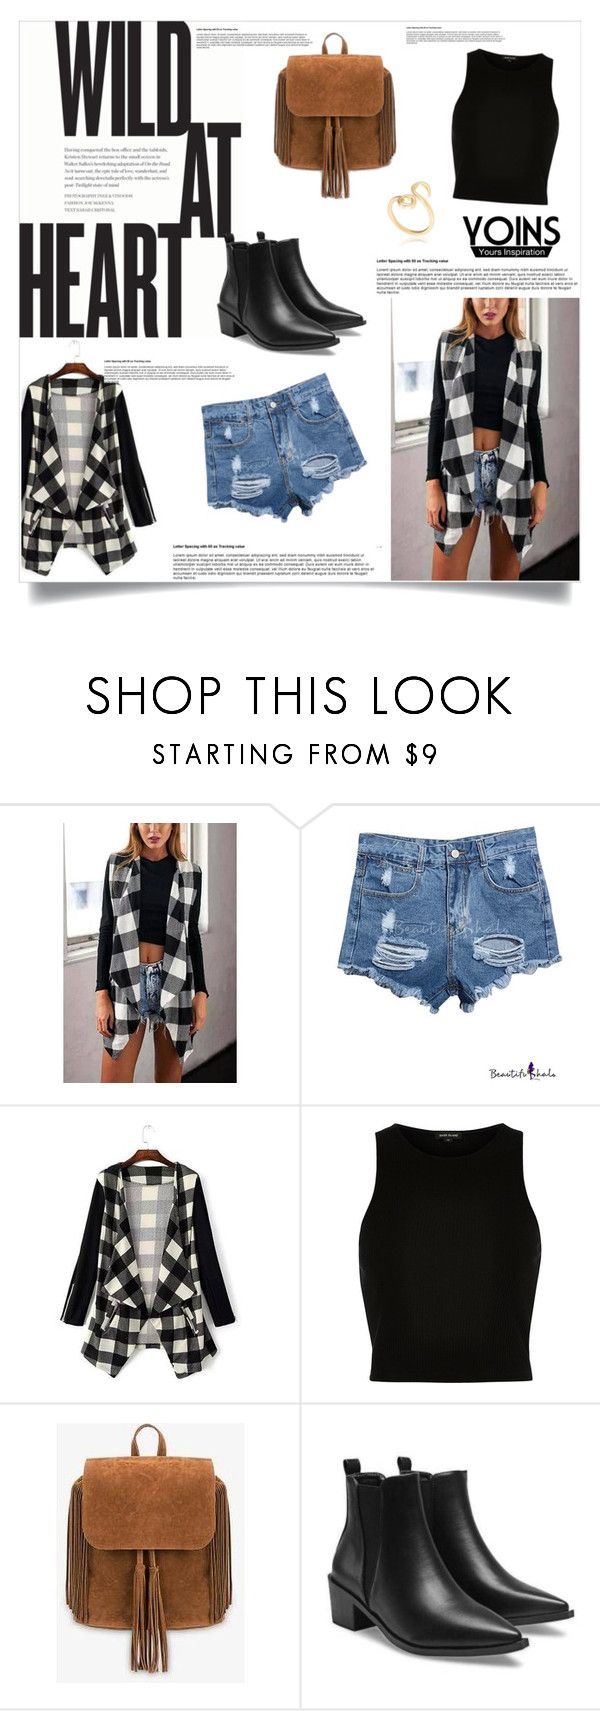 """""""Yoins contest"""" by jasmina-fazlic ❤ liked on Polyvore featuring River Island, women's clothing, women's fashion, women, female, woman, misses and juniors"""